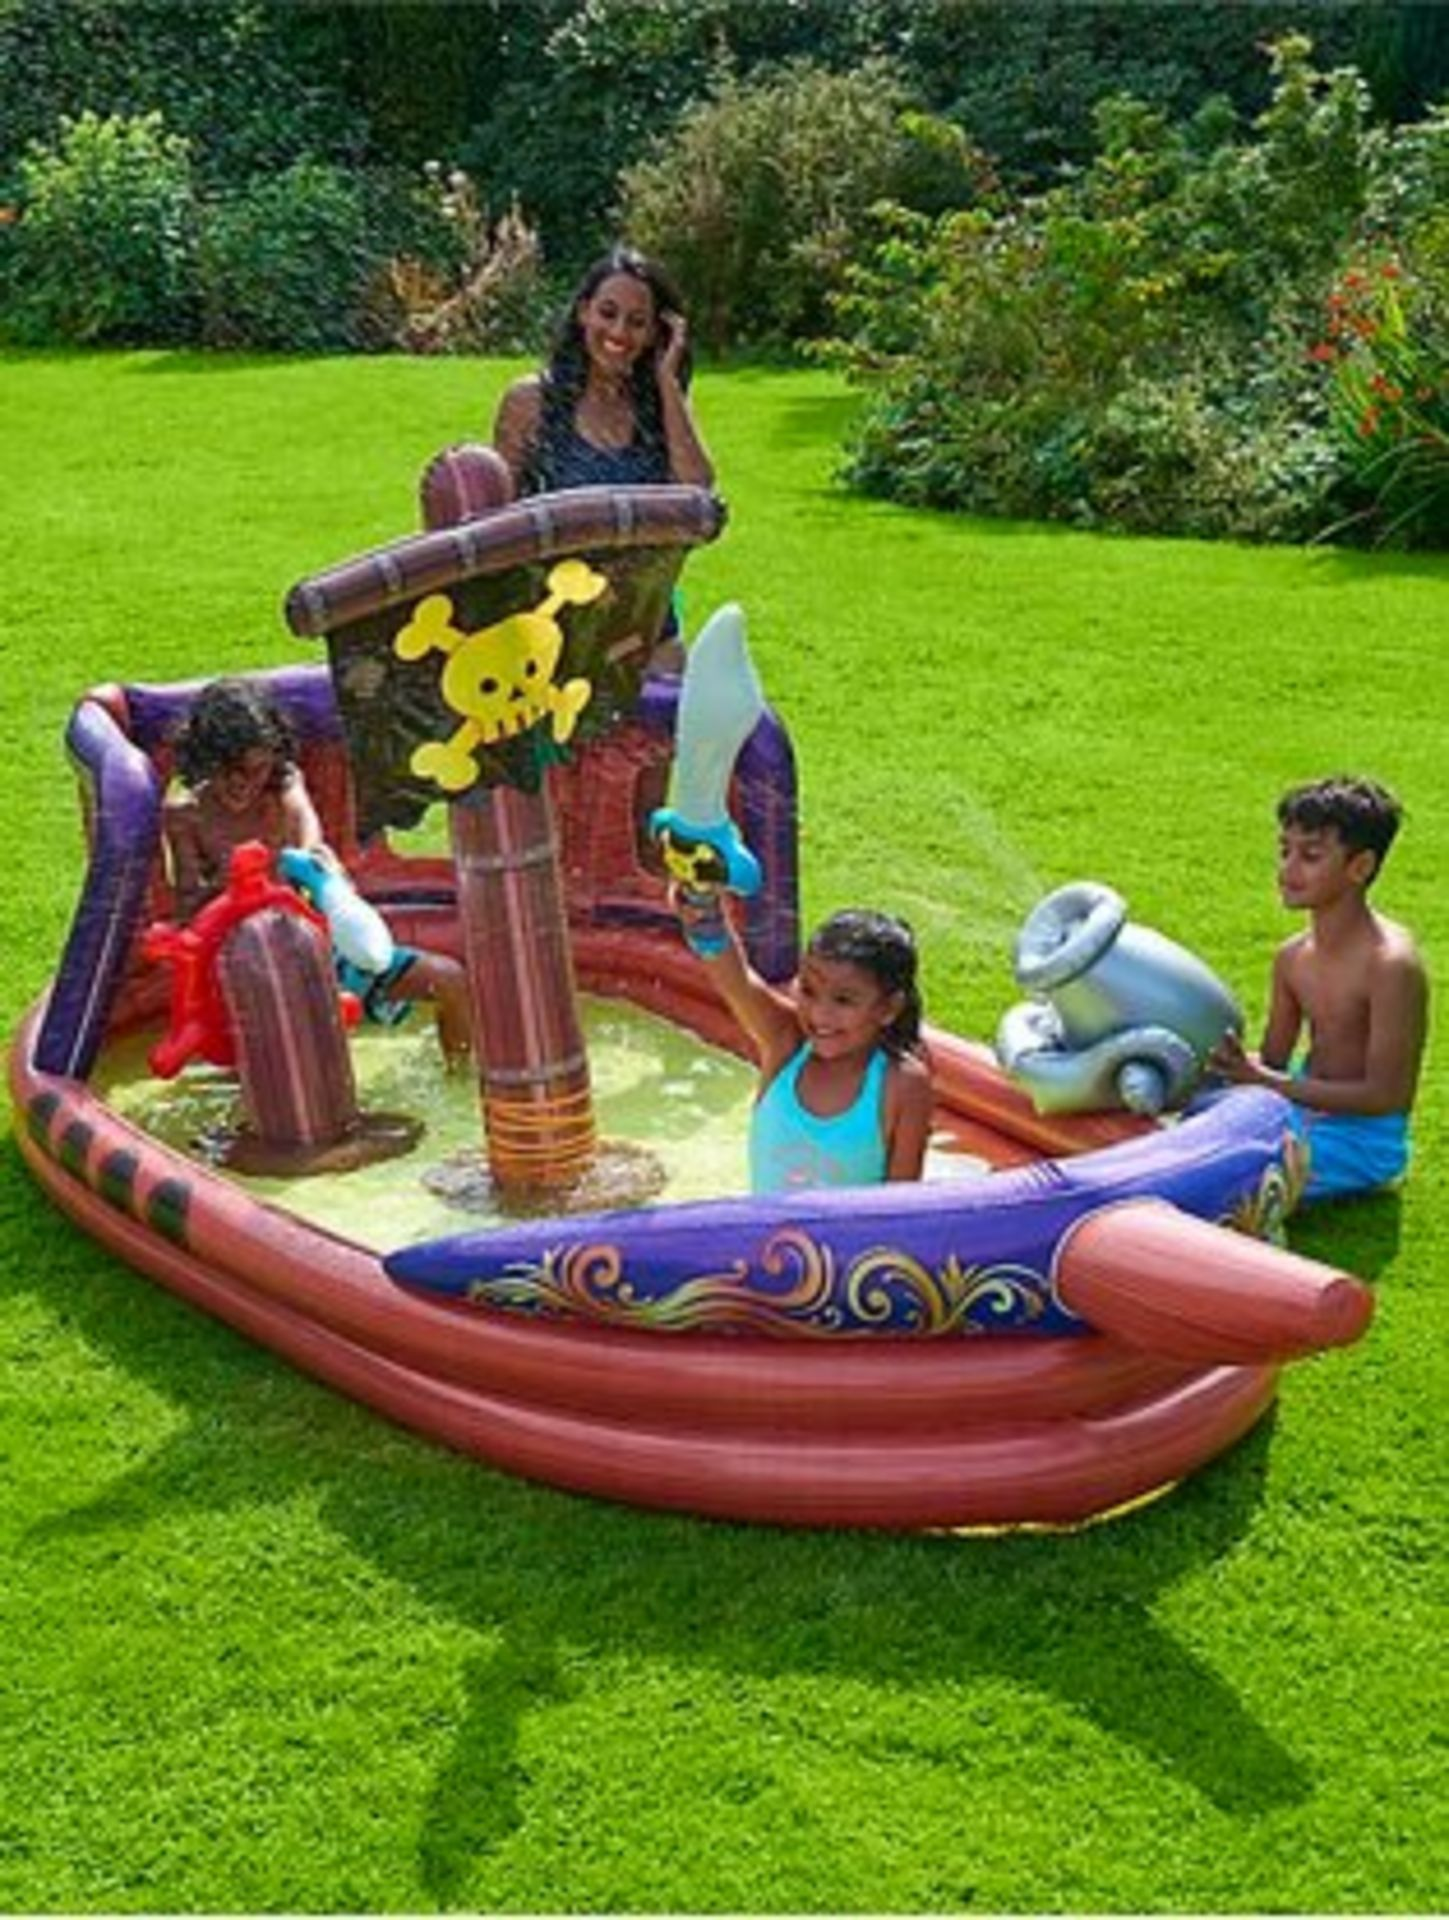 (3G) 6x Kid Connection Inflatable Items. 5x 3 Ring Pool. 1x Inflatable Pirate Ship, - Image 2 of 3